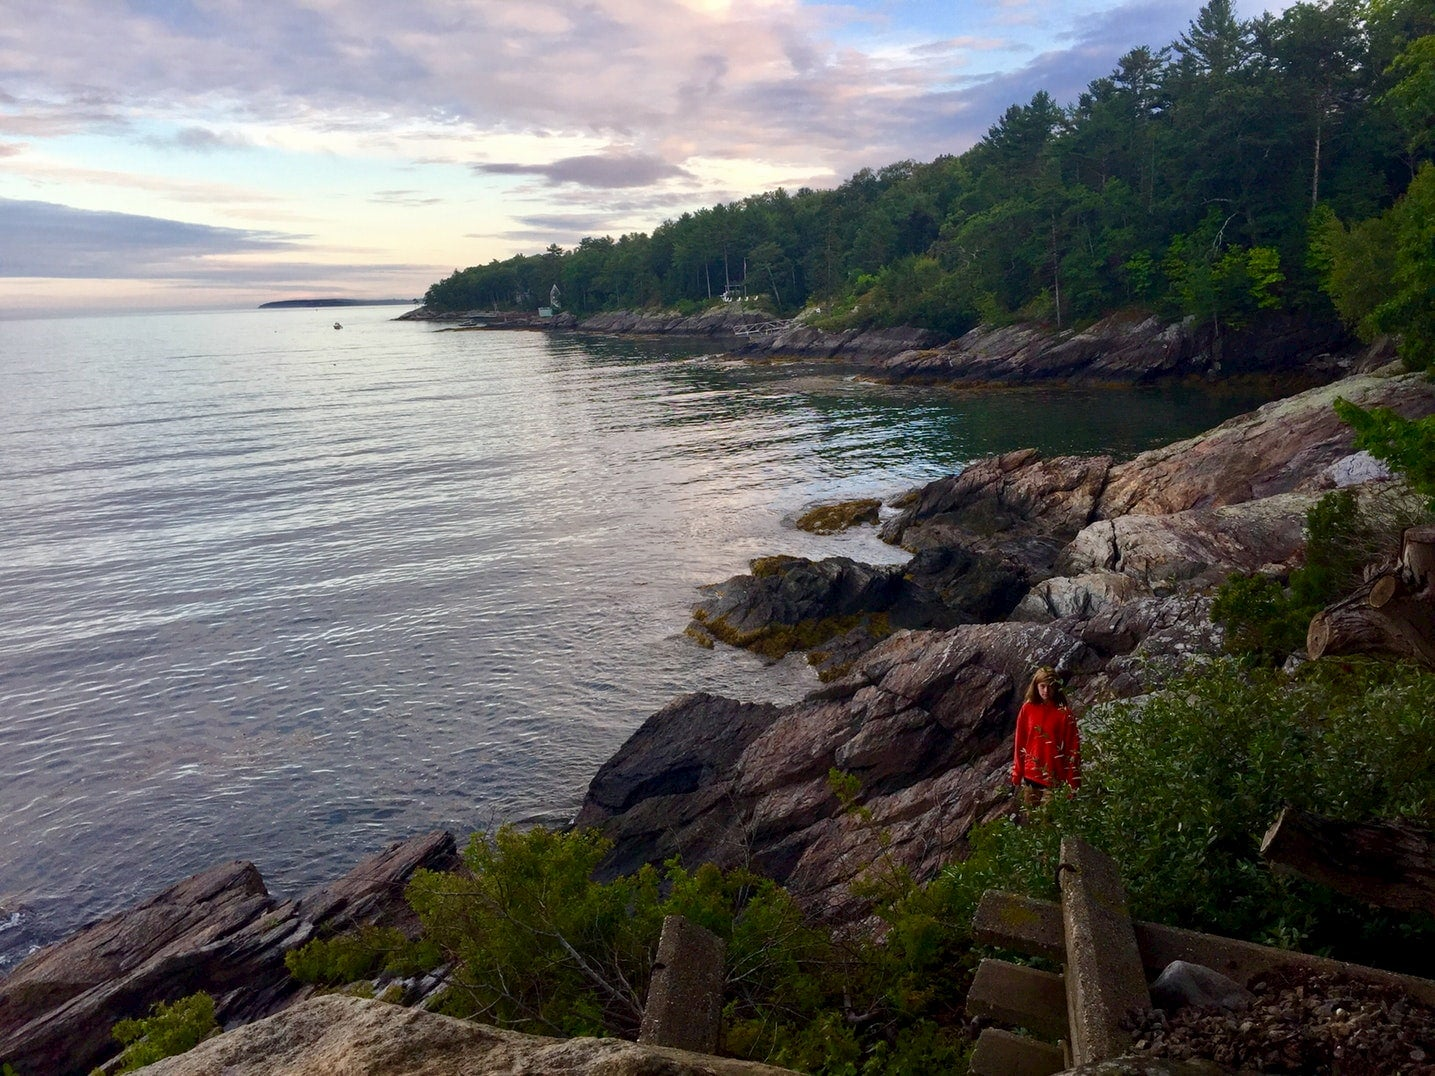 Girl in red jacket walking along coastal cliffs in Maine.